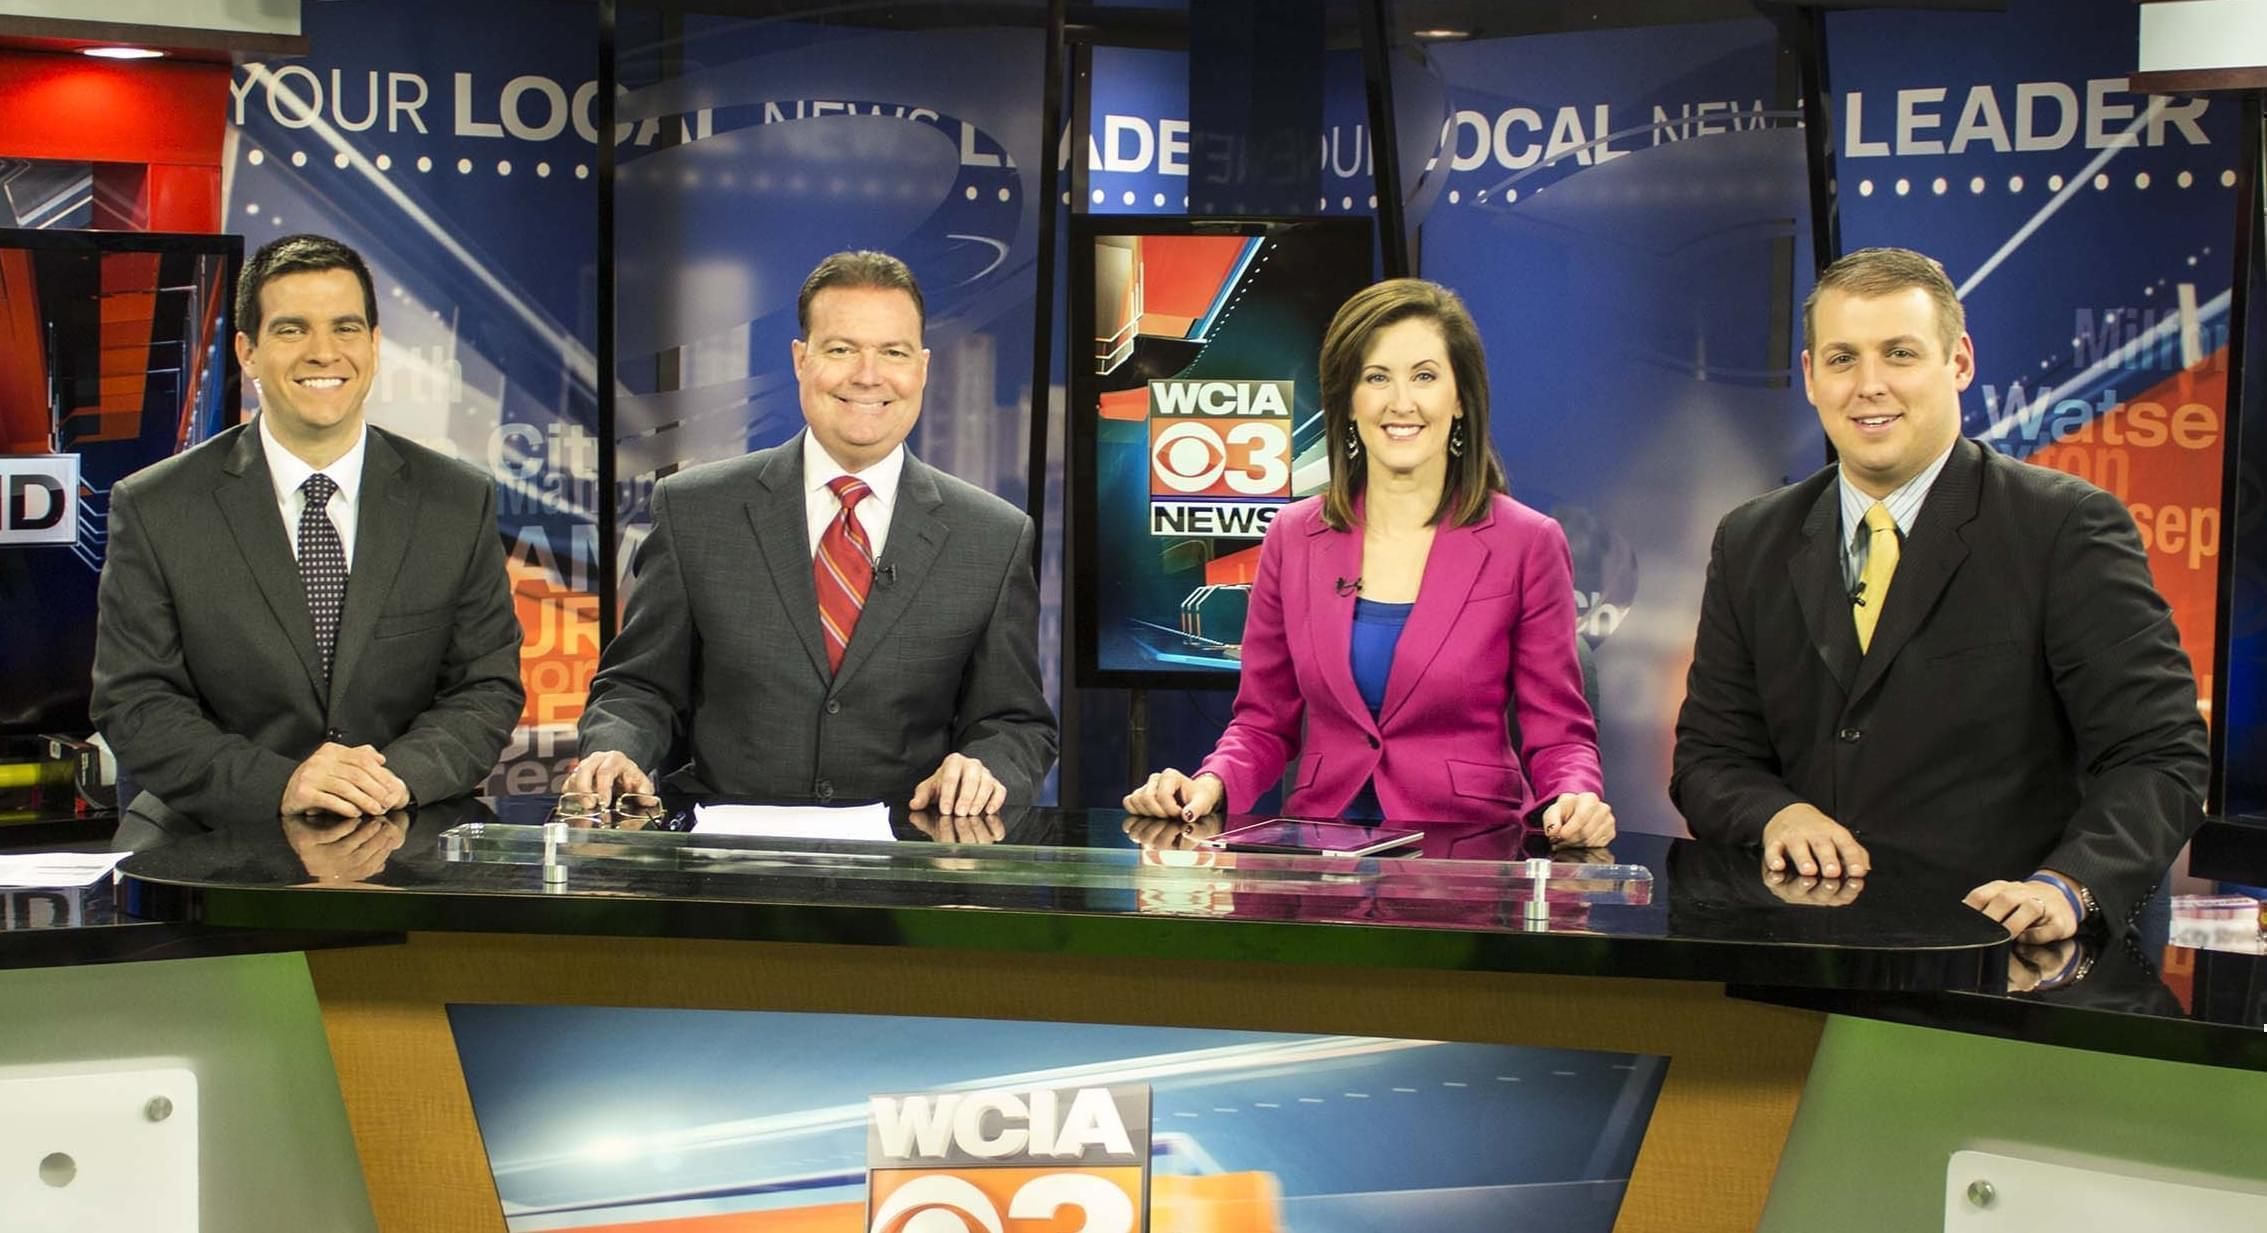 Dave Benton - second from left -and WCIA staff in an evening broadcast.